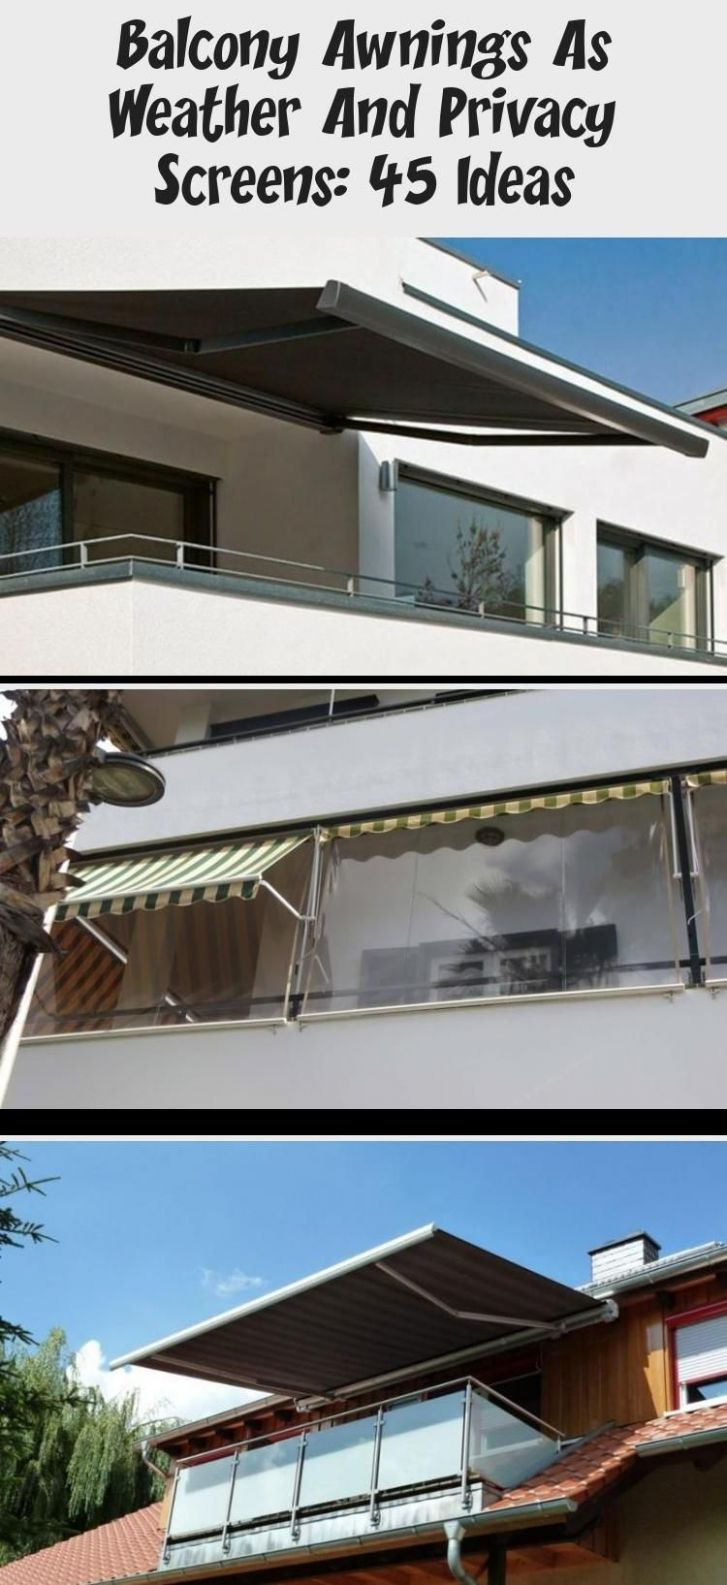 Balcony Awnings As Weather And Privacy Screens: 12 Ideas ..